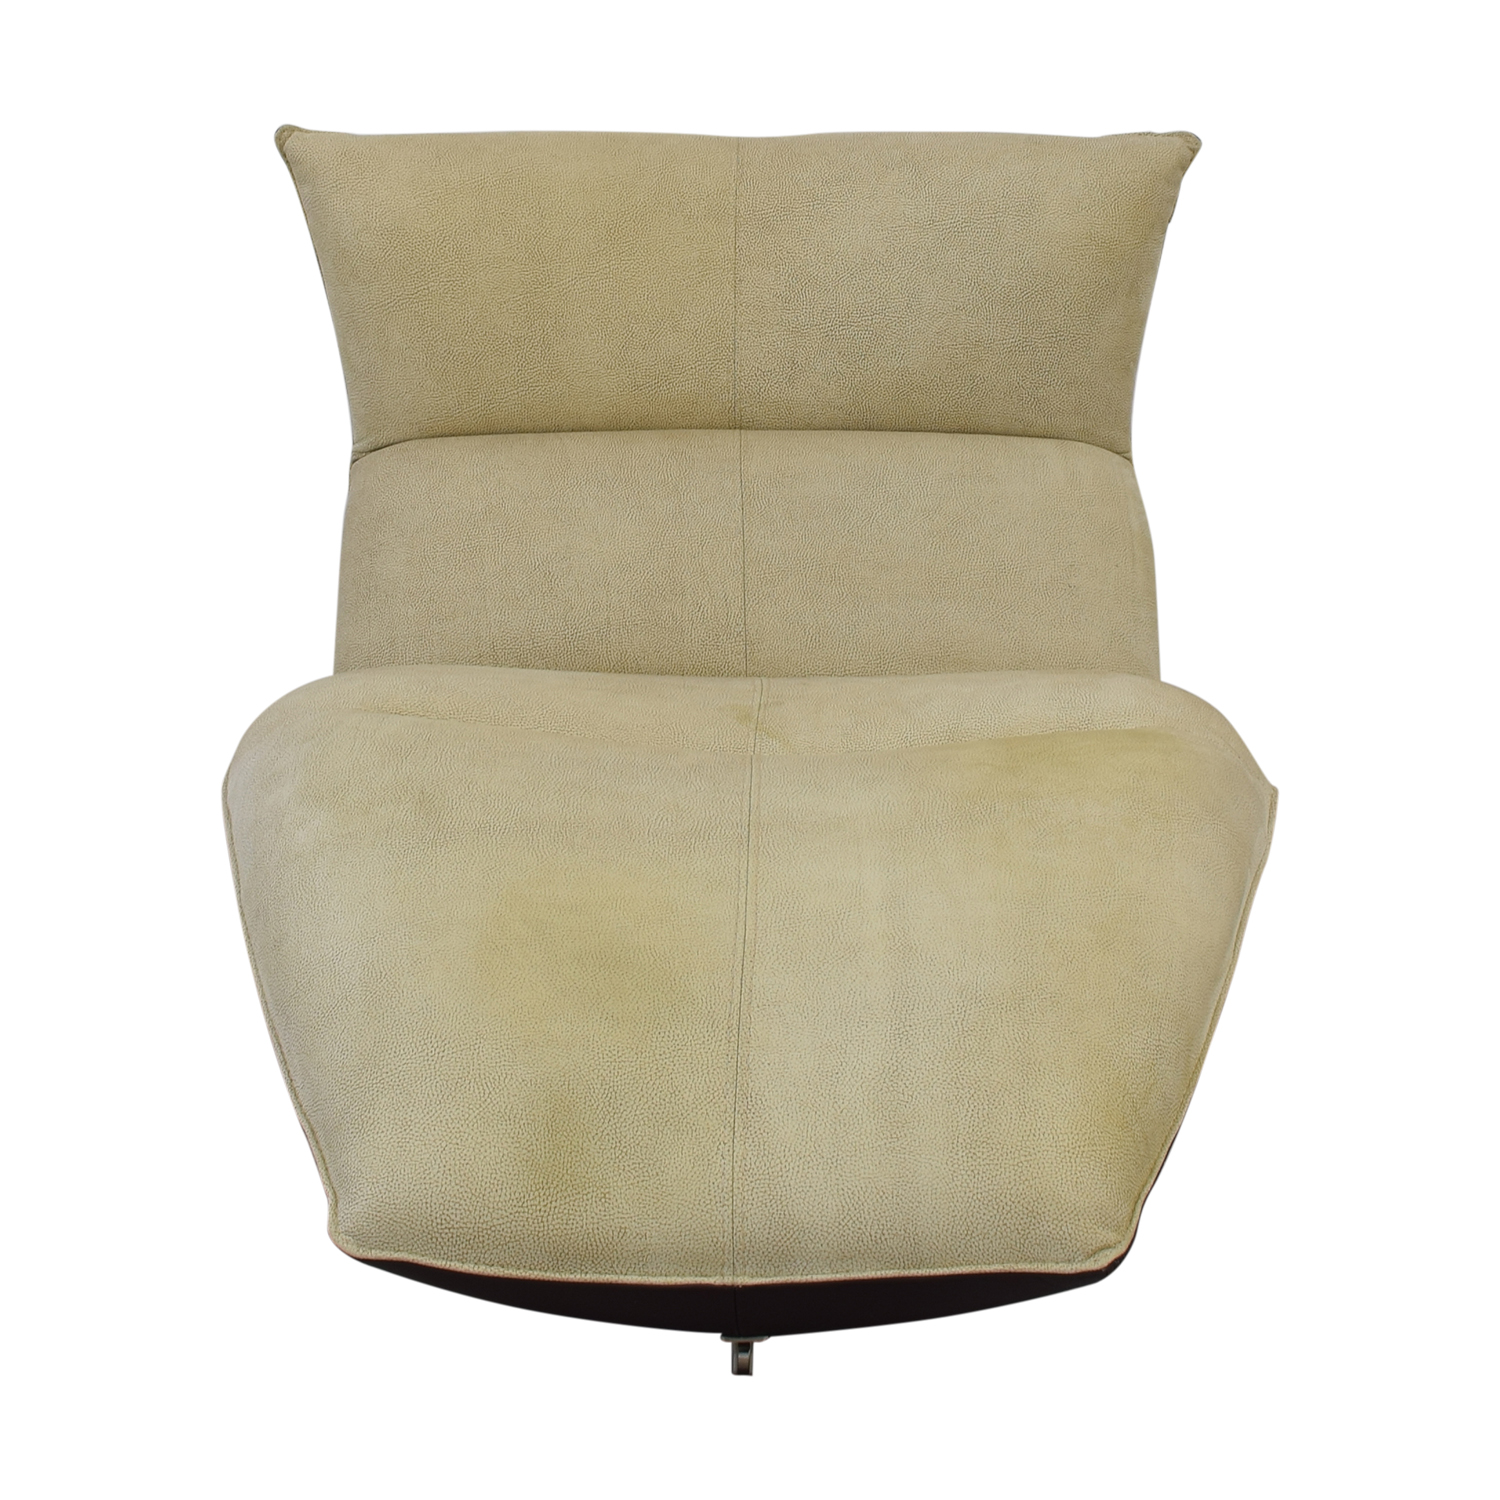 buy Bianchi Chaise Lounge Bianchi Accent Chairs